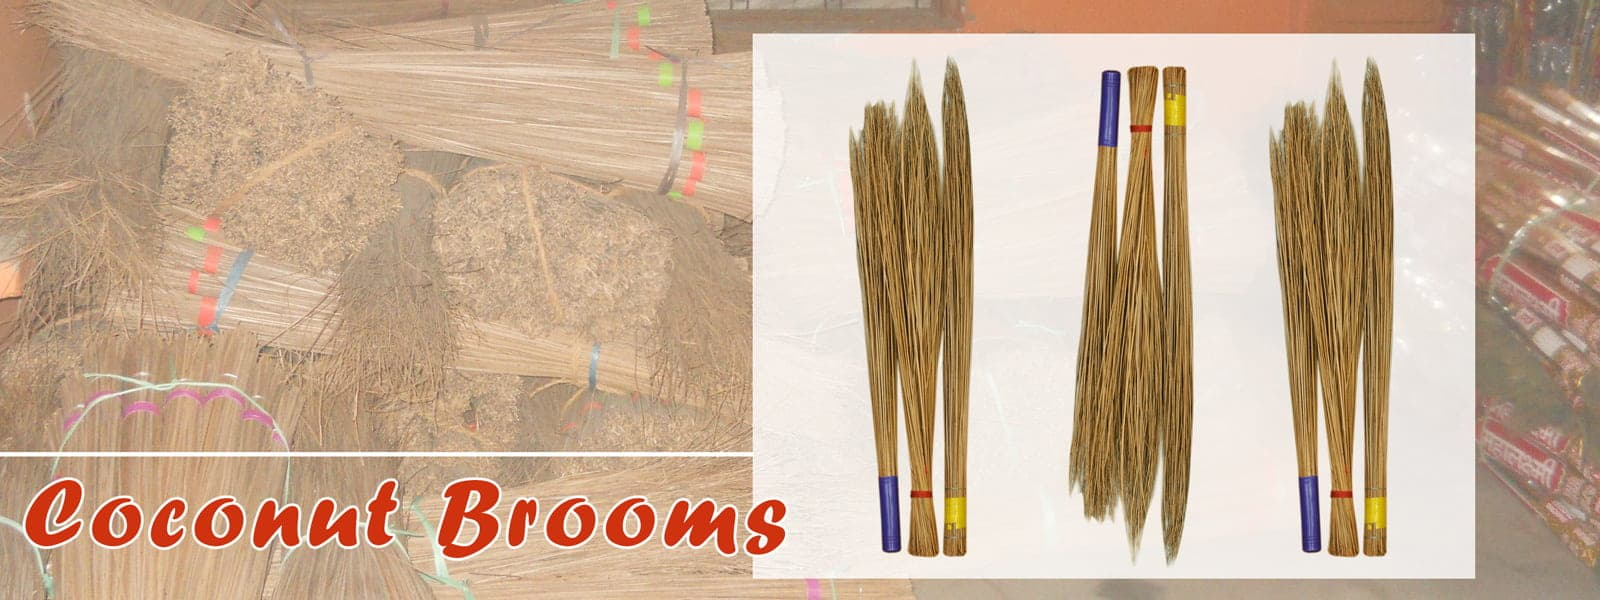 grass broom manufacturers broom grass suppliers broom manufacturers india raw broom suppliers broom grass coconut broom coconut broom stick grass broom wholesalers grass broom raw material broom manufacturers in india raw material for making broom soft broom broom manufacturers in delhi coconut broom stick suppliers broom manufacturers grass broom manufacturers in india coconut palm broom broom making materials broomstick manufacturers coconut broom manufacturer grass broom raw material suppliers coconut broom suppliers best broom in india broom raw material broom material broom suppliers soft broom manufacturers broomstick manufacturers india broom coconut grass suppliers soft grass broom coconut leaf broom coconut brooms manufacturers in india broom raw material suppliers in india broom raw material suppliers coconut broom stick buyers in india phool jhadu manufacturers coconut broom stick exporter grass broom stick broom grass in india broom making supplies natural broom broom made of coconut stick jharoo broom broom grass suppliers in india phool jharu manufacturers india grass for broom coconut tree broom broom stick manufacturers phool jharu suppliers good quality brooms grass broom india phool jhadu material